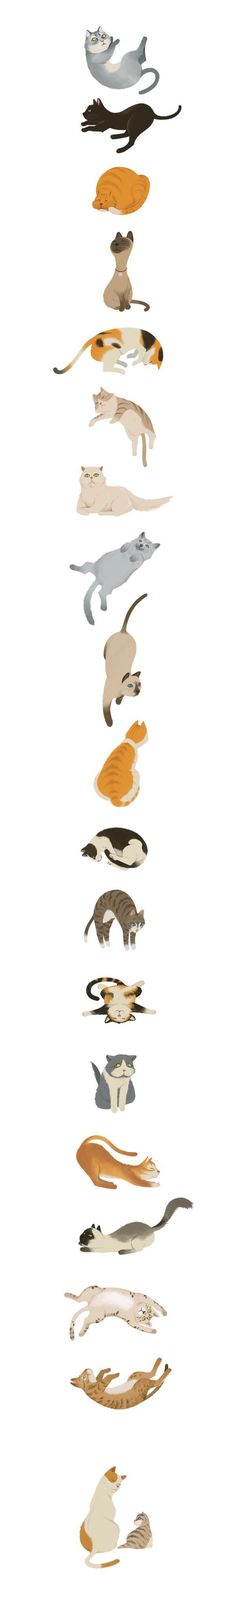 Cats by Wonho Jung, via Behance - Tap the link now to see all of our cool cat collections!